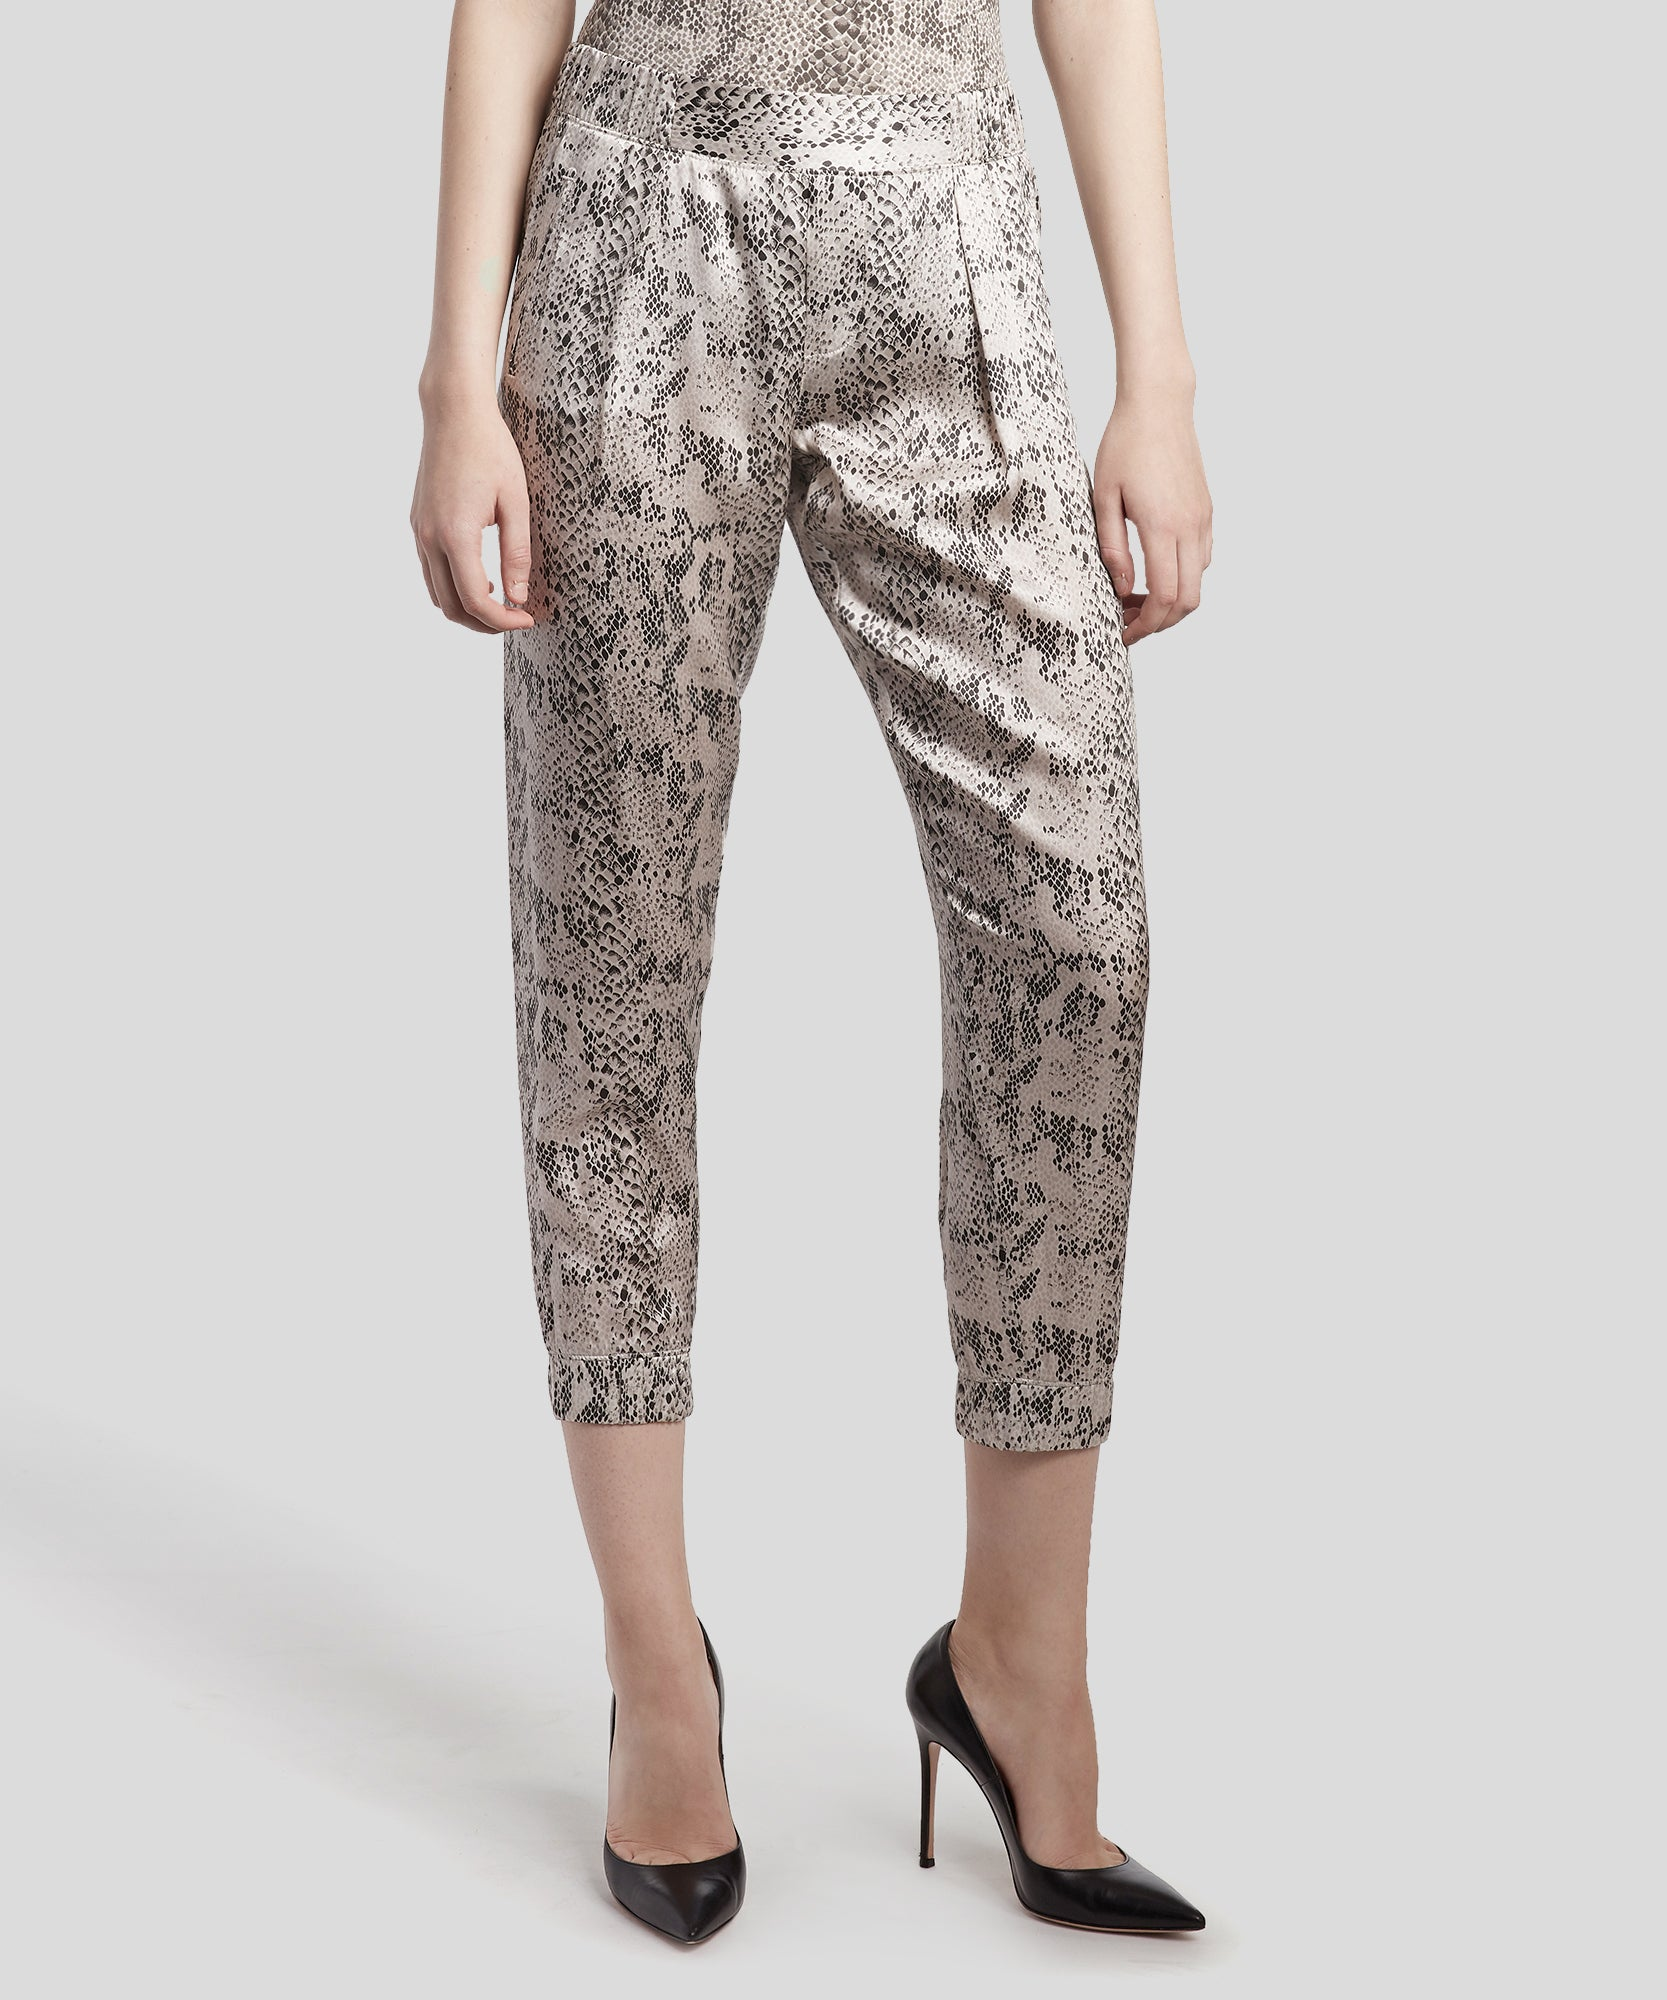 Haze and Pavement Combo Snake Print Silk Sweatpants - Women's Silk Sweatpants by ATM Anthony Thomas Melillo